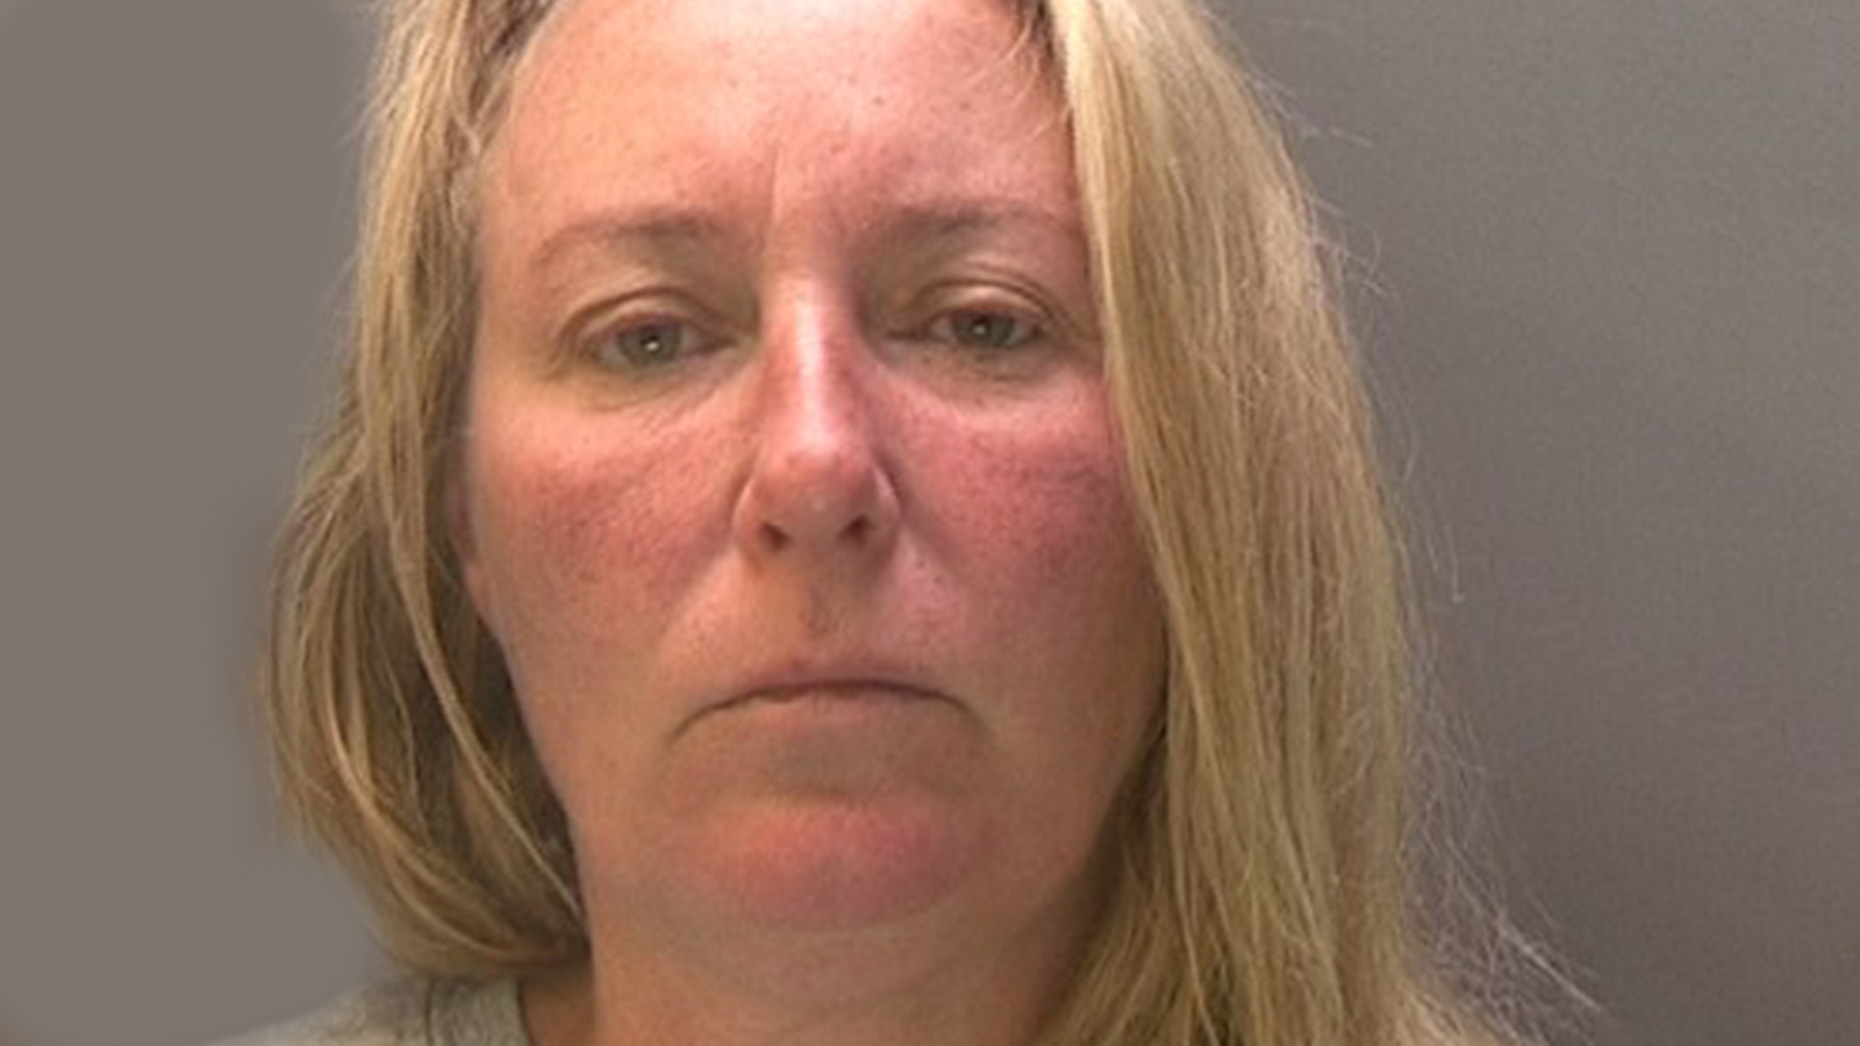 Pa. woman, 50, accused of stabbing boyfriend, 27, in chest